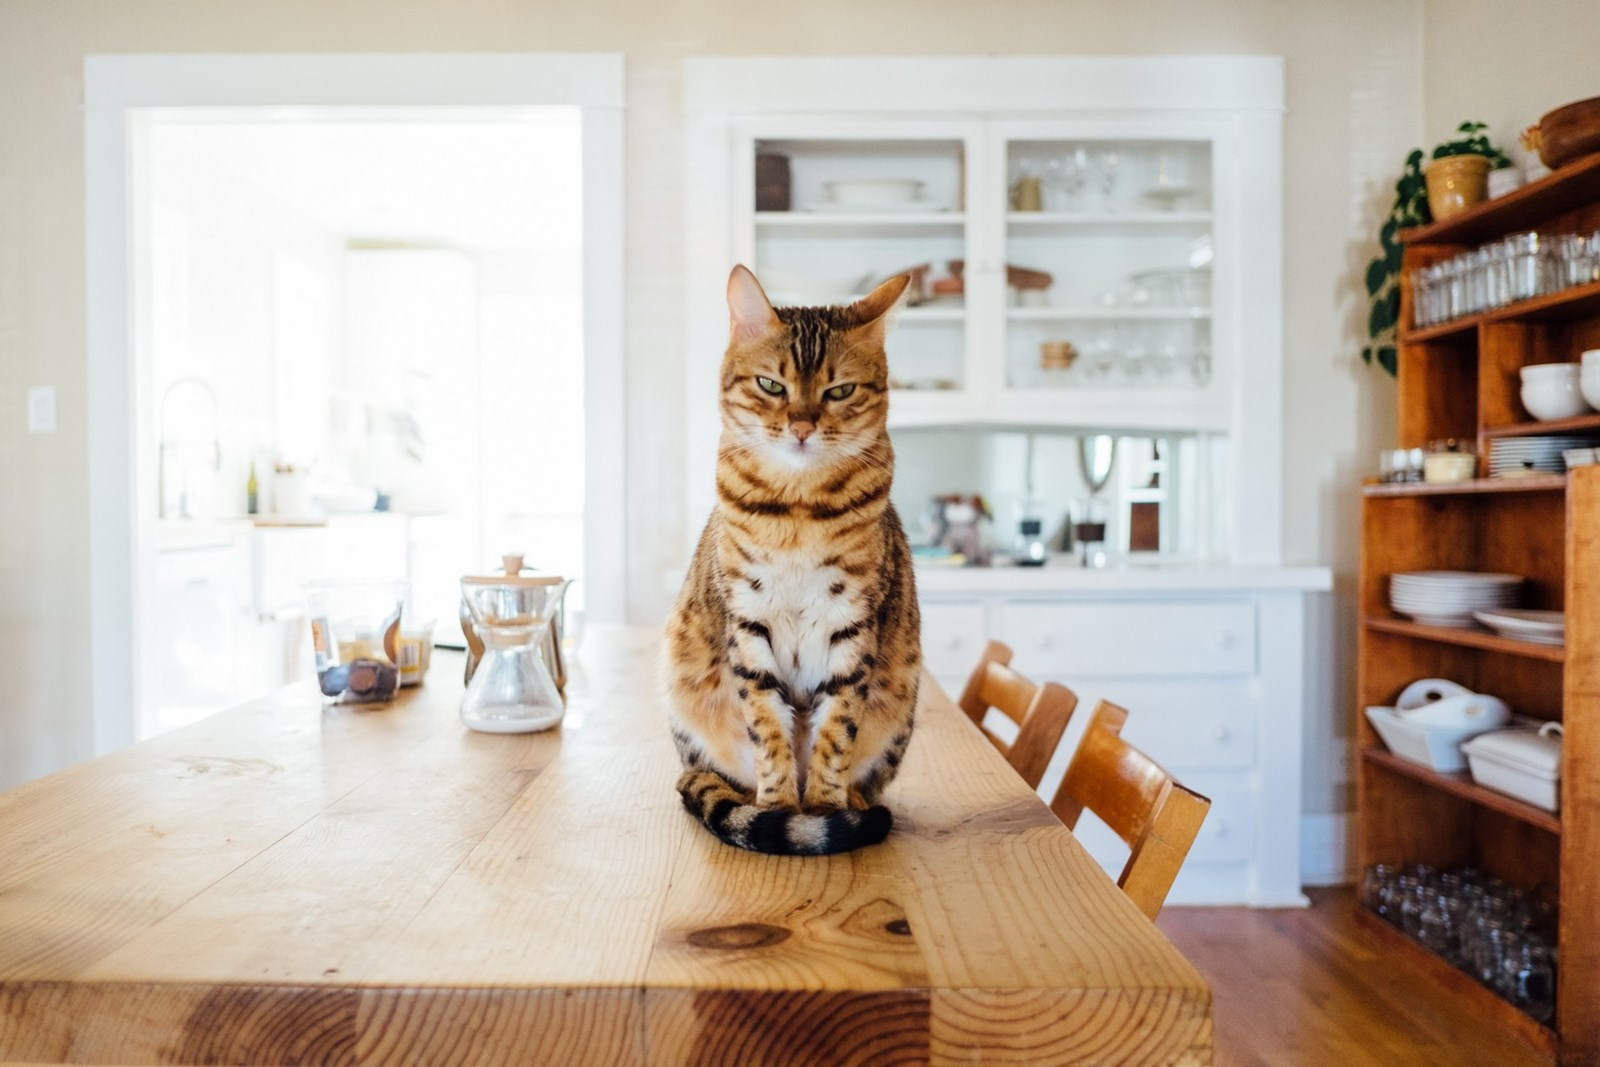 Angry cat on dining table